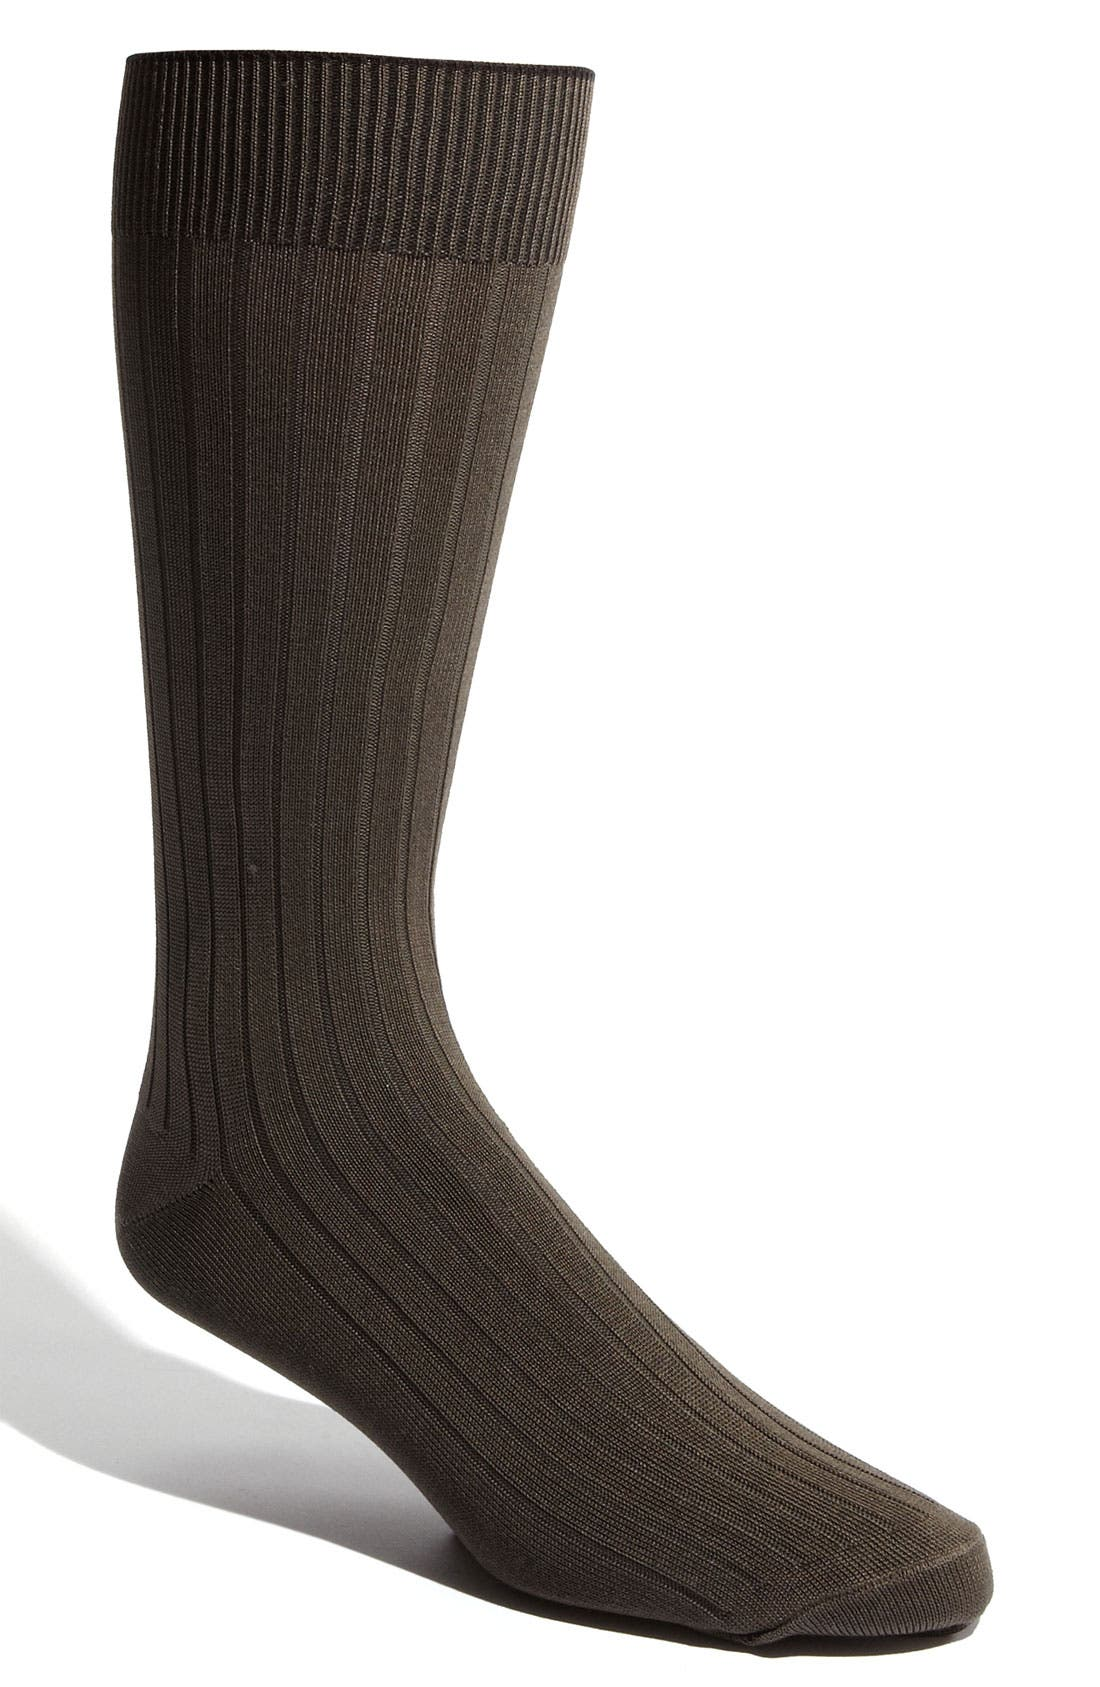 Nordstrom Men's Shop Cotton Blend Socks